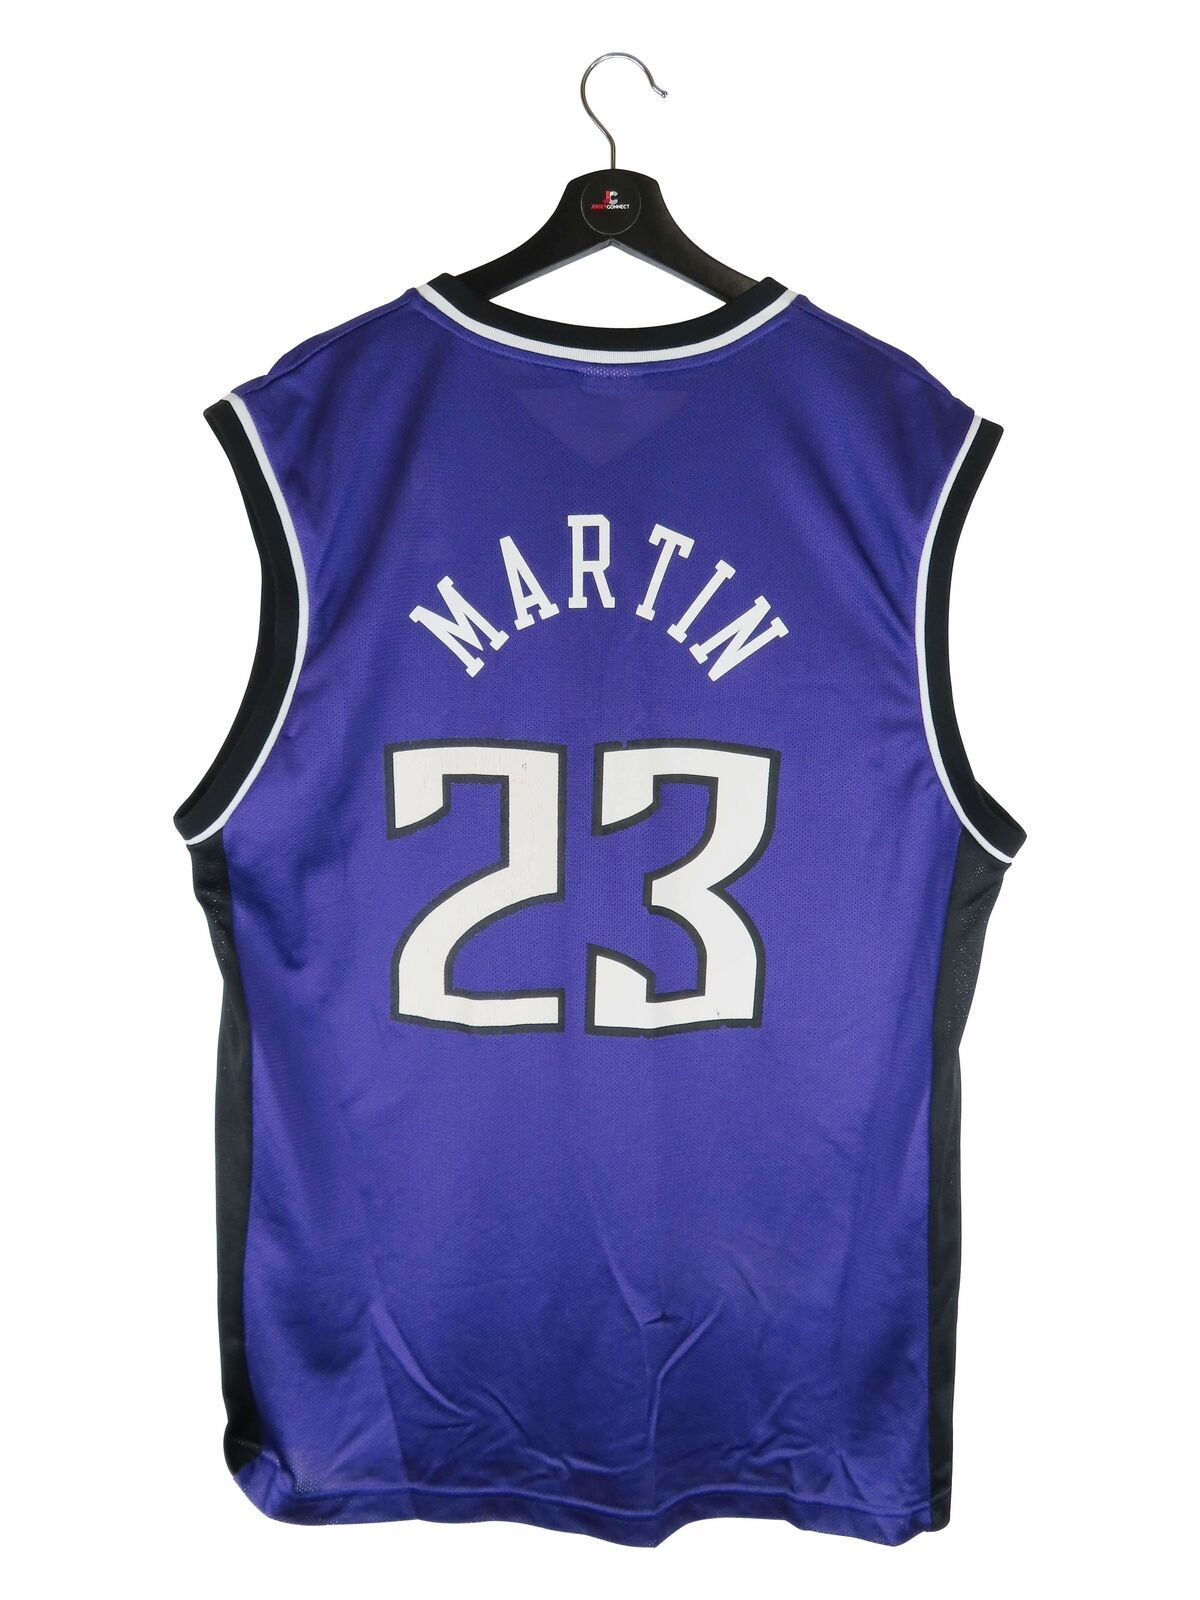 Primary image for Reebok Kevin Martin Sacramento Kings Replica NBA Jersey (Large)